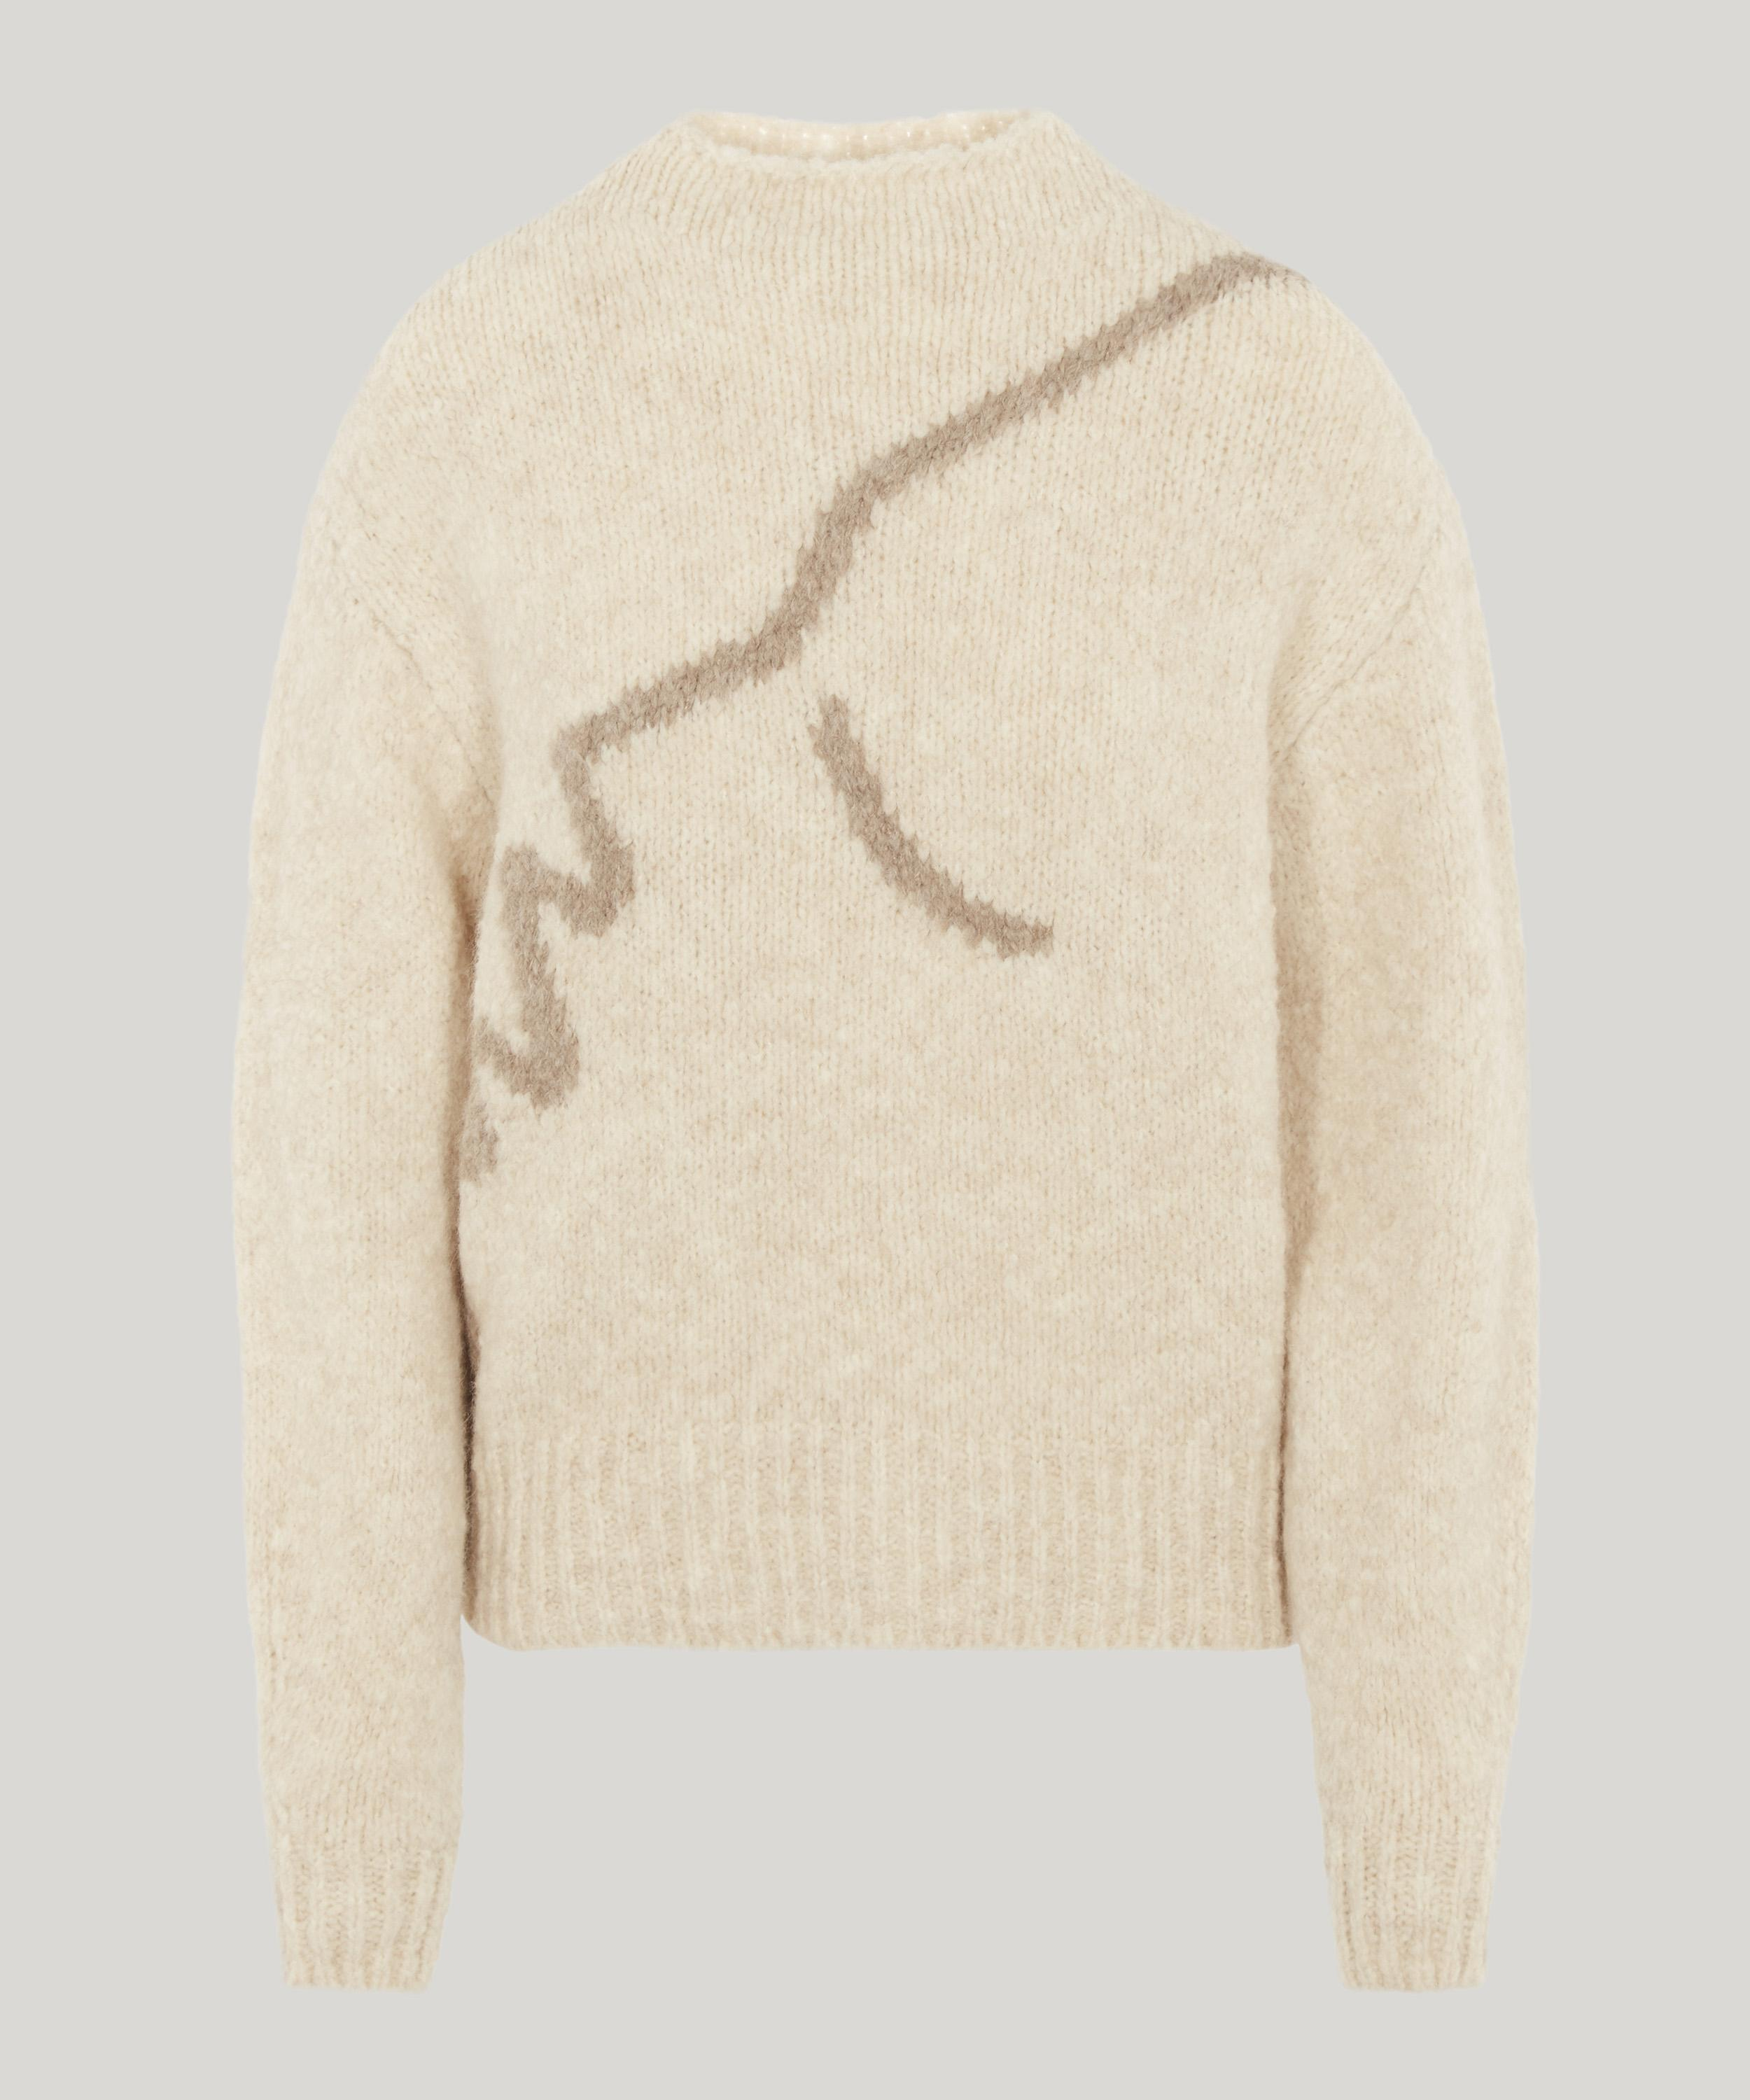 a9a5ef8dca Virgo Intarsia Knit Sweater